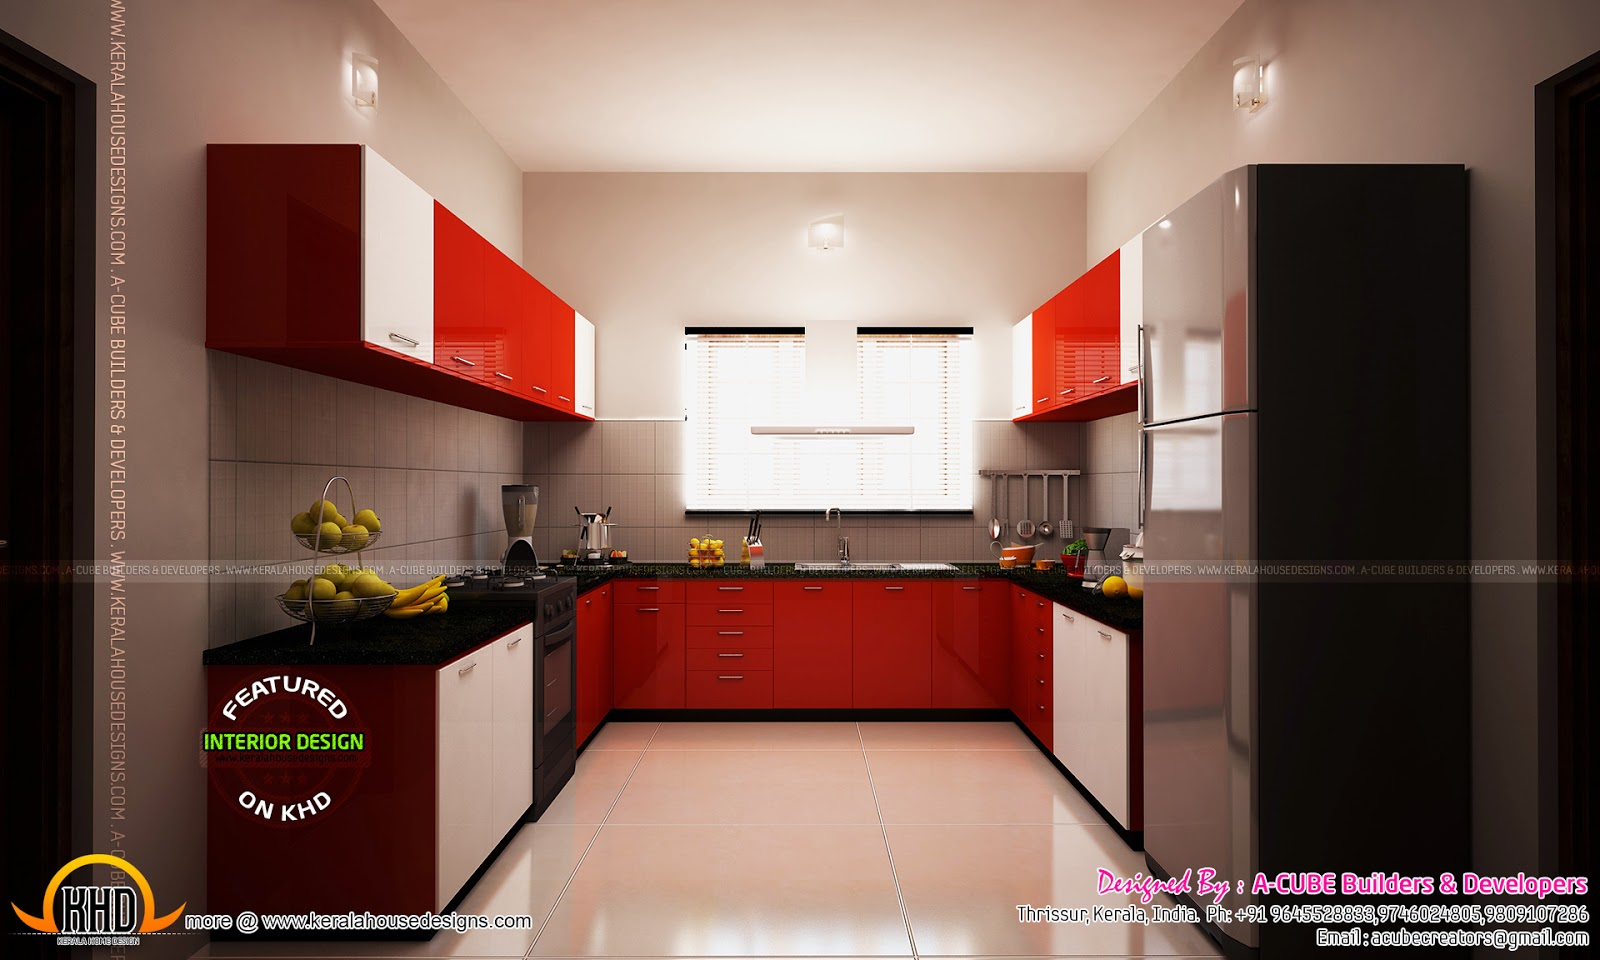 Tamilnadu Model Small Budget House Keralahousedesigns